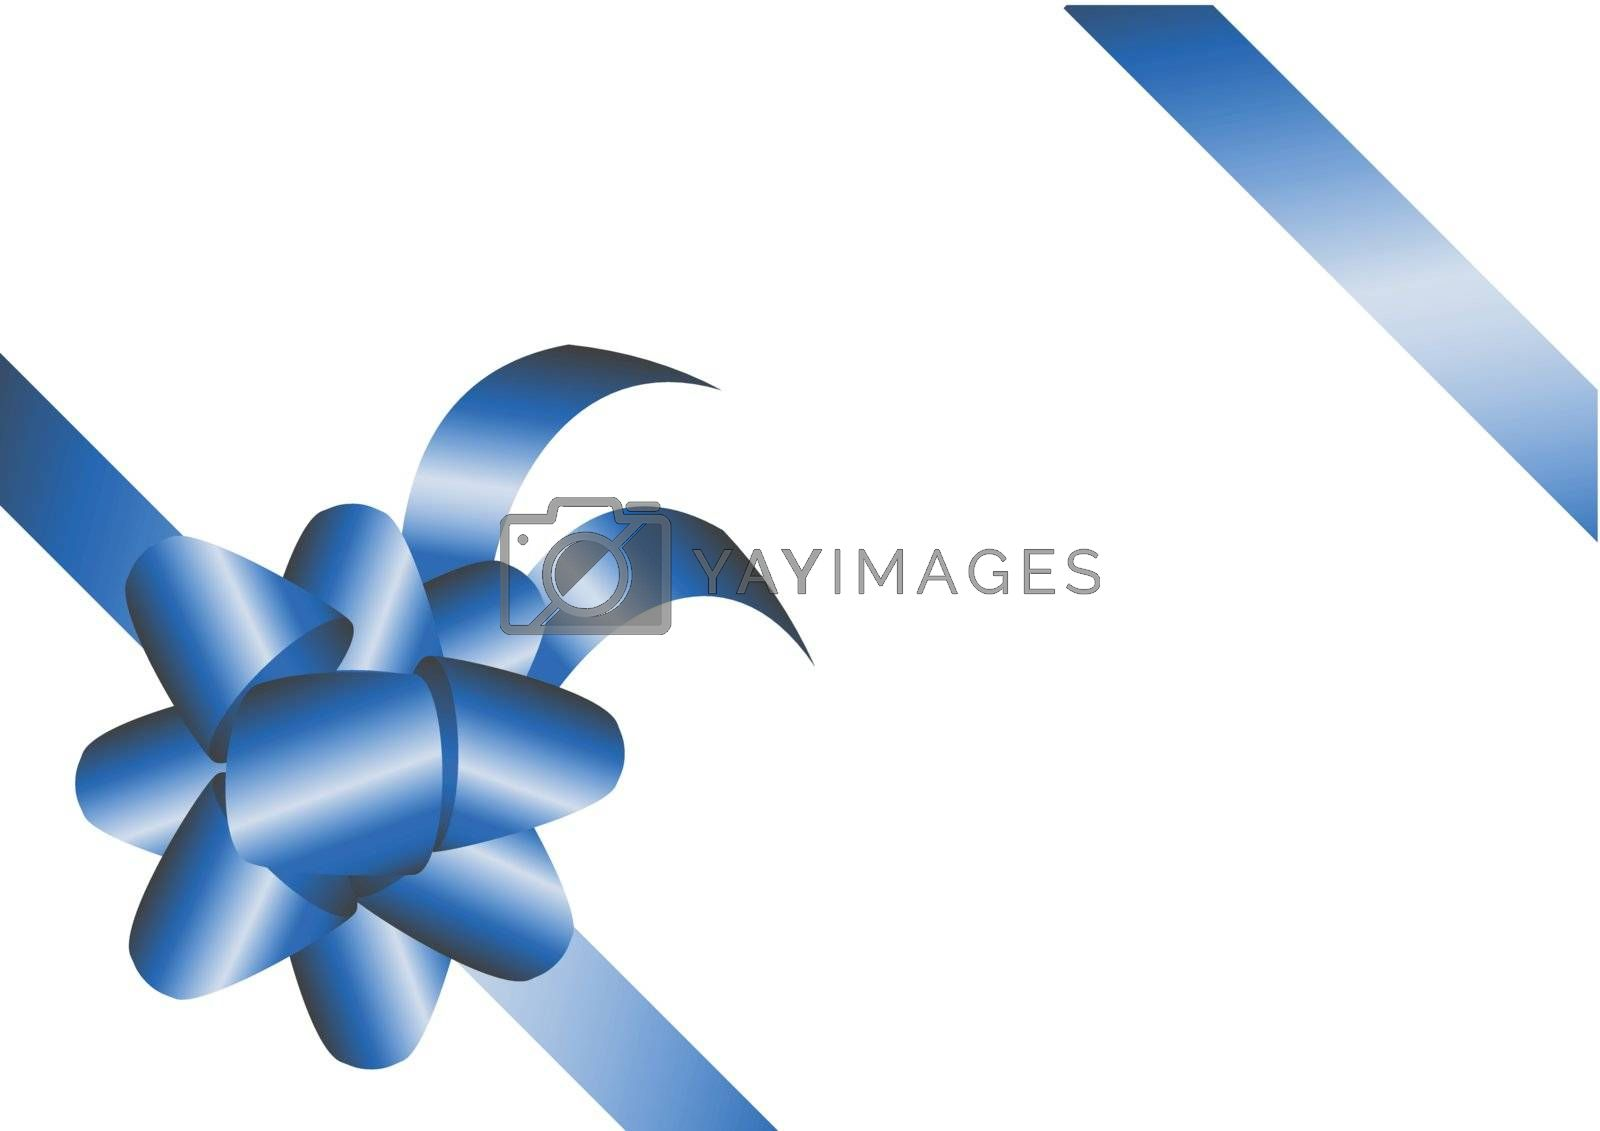 Royalty free image of Blue Ribbons by ajn